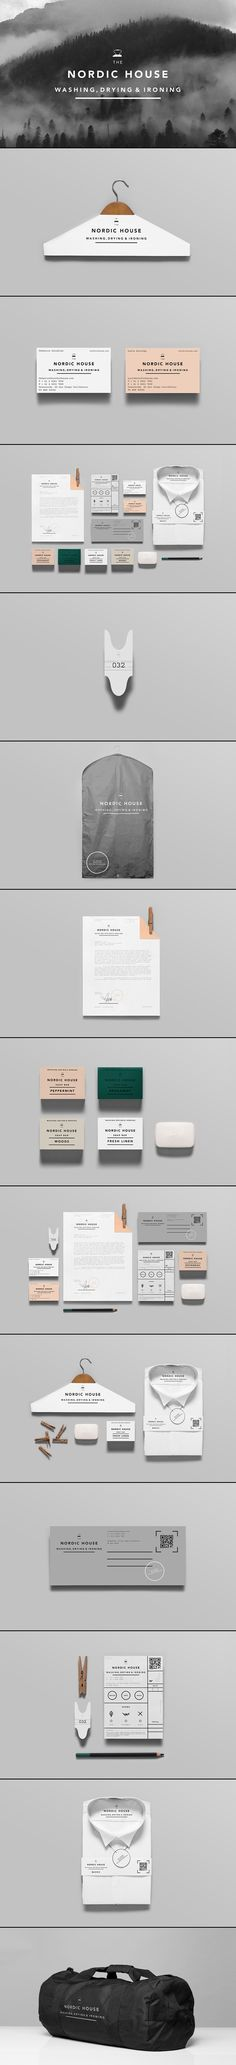 Nordic House | #stationary #corporate #design #corporatedesign #identity #branding #marketing < repinned by www.BlickeDeeler.de | Take a look at www.LogoGestaltung-Hamburg.de